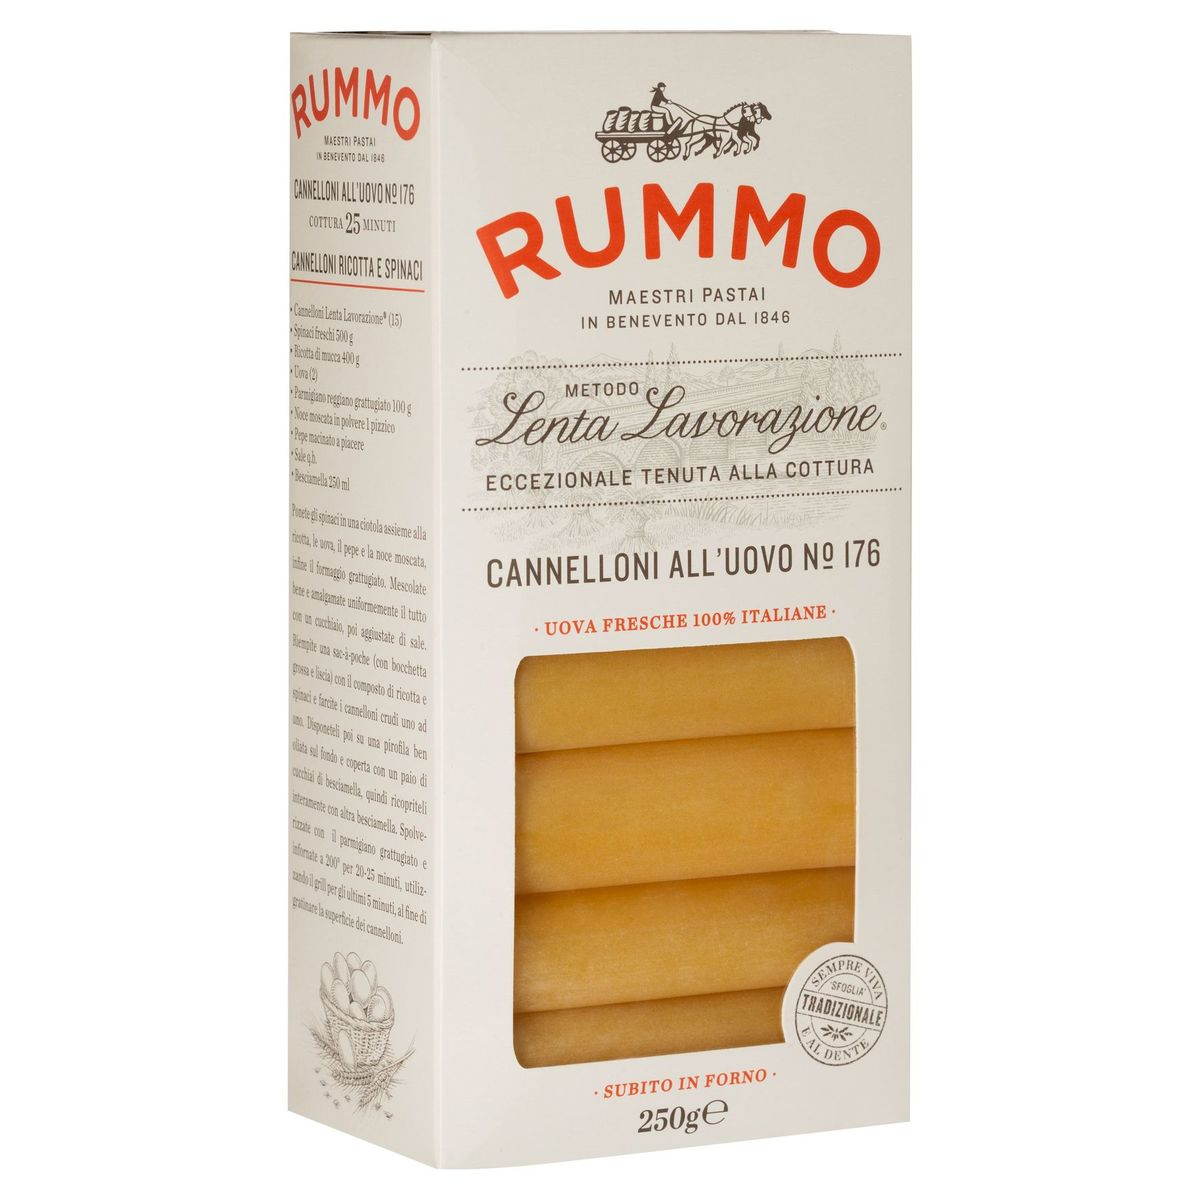 Rummo Cannelloni All'Uovo N° 176 250 g